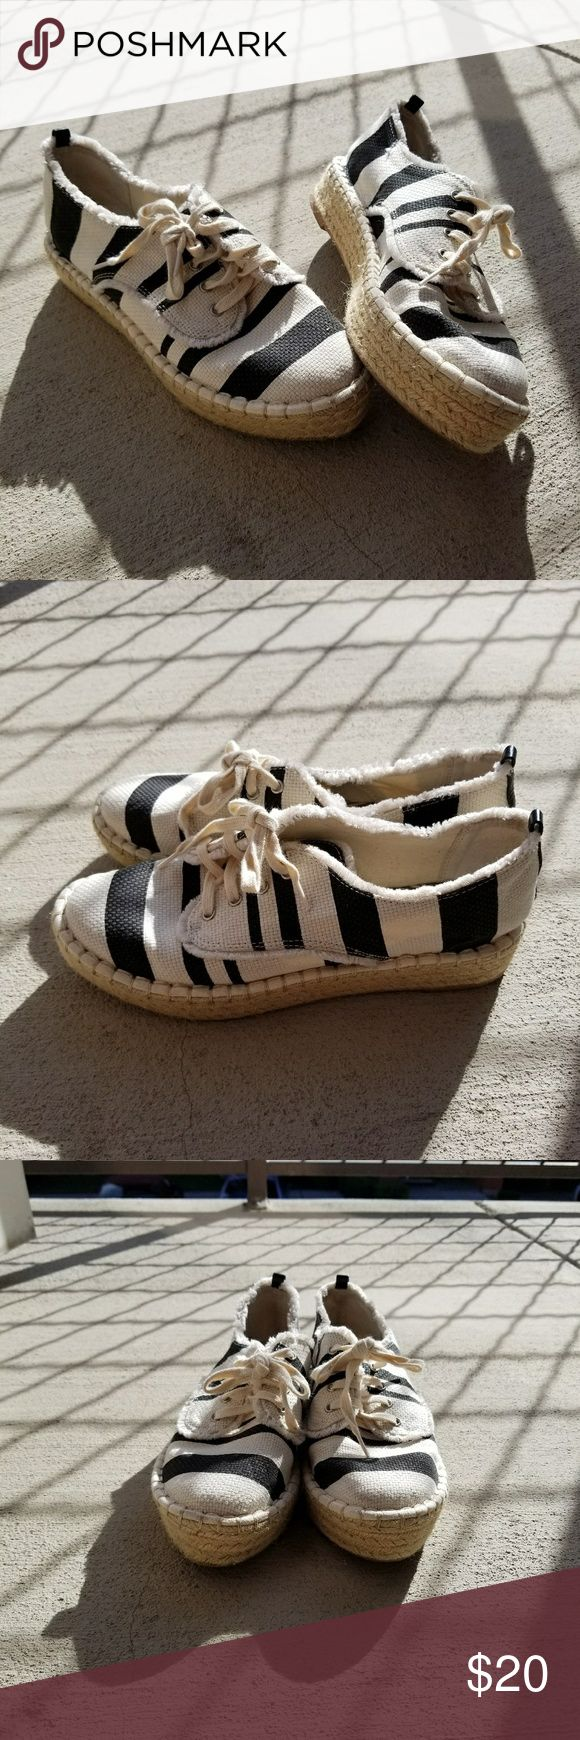 Black and White Canvas Sneakers Black and White Canvas Sneakers With platform  Espadrilles DV by Dolce Vita Shoes Espadrilles